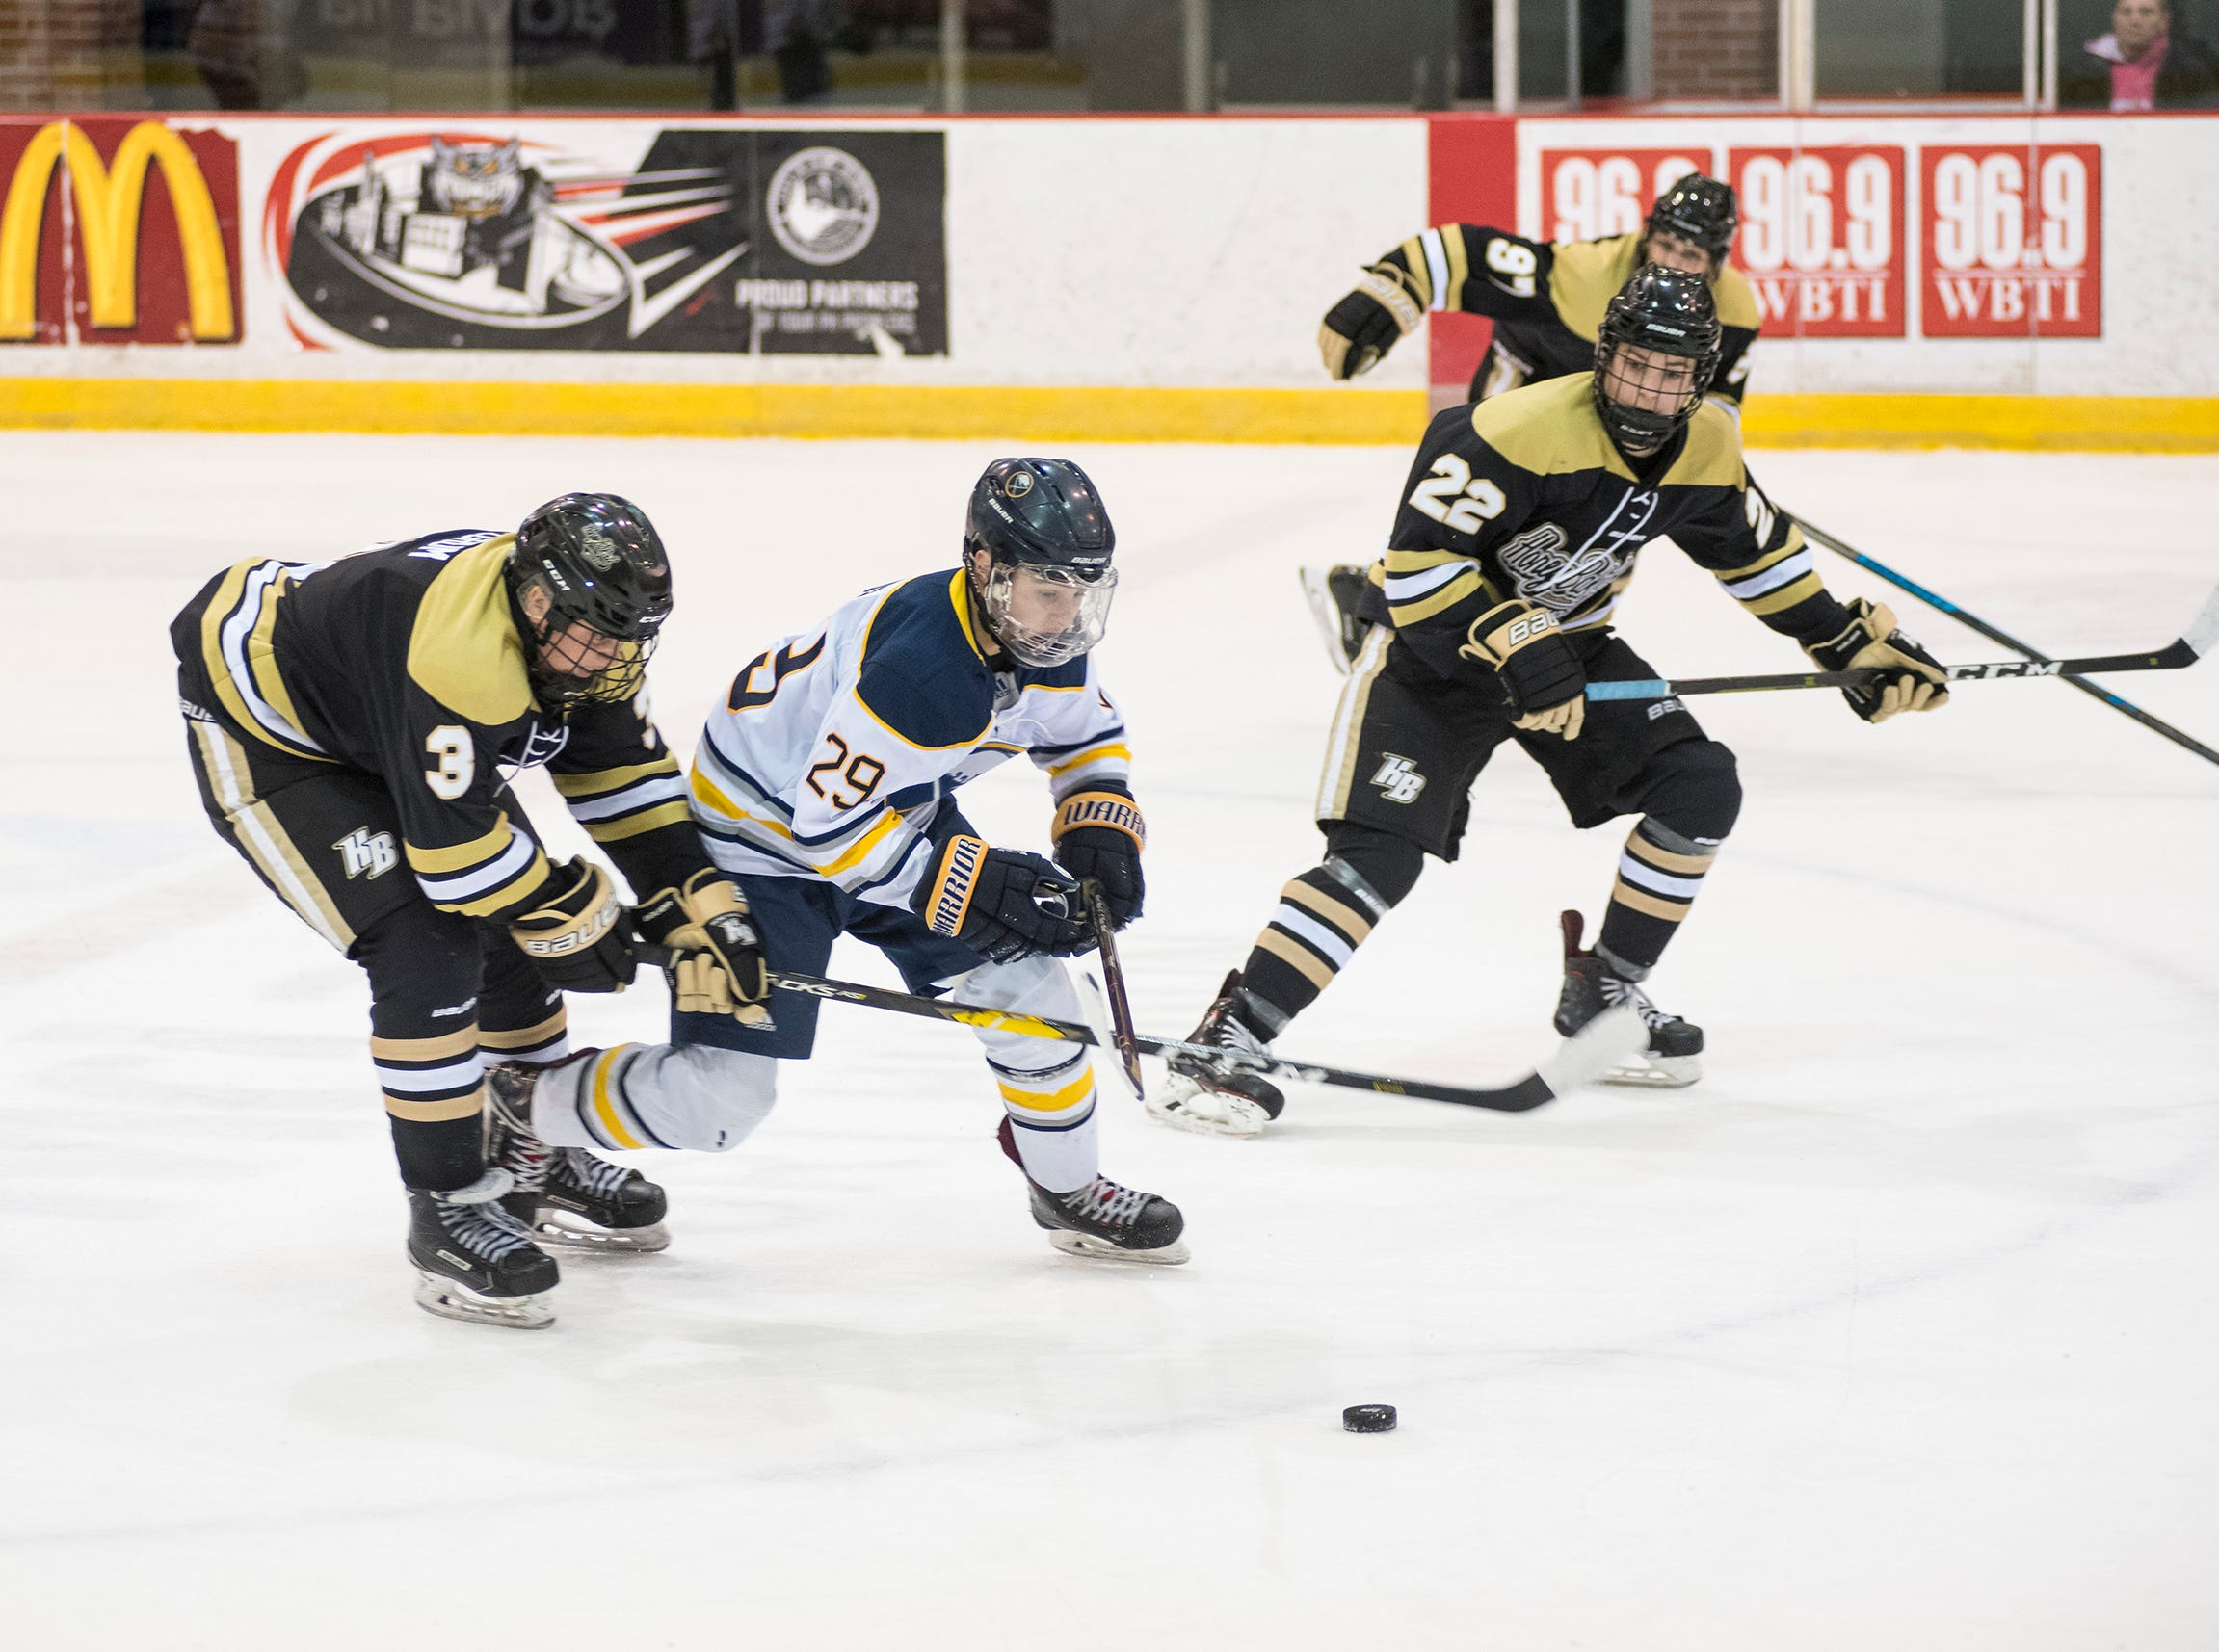 Detroit Honeybaked forward Emmett Pegrum (3) goes to steal the puck from Buffalo Jr. Sabres forward Nicholas Peluso during the Silver Stick Finals BAAA Championship match Sunday, Jan. 6, 2019 at McMorran Arena.